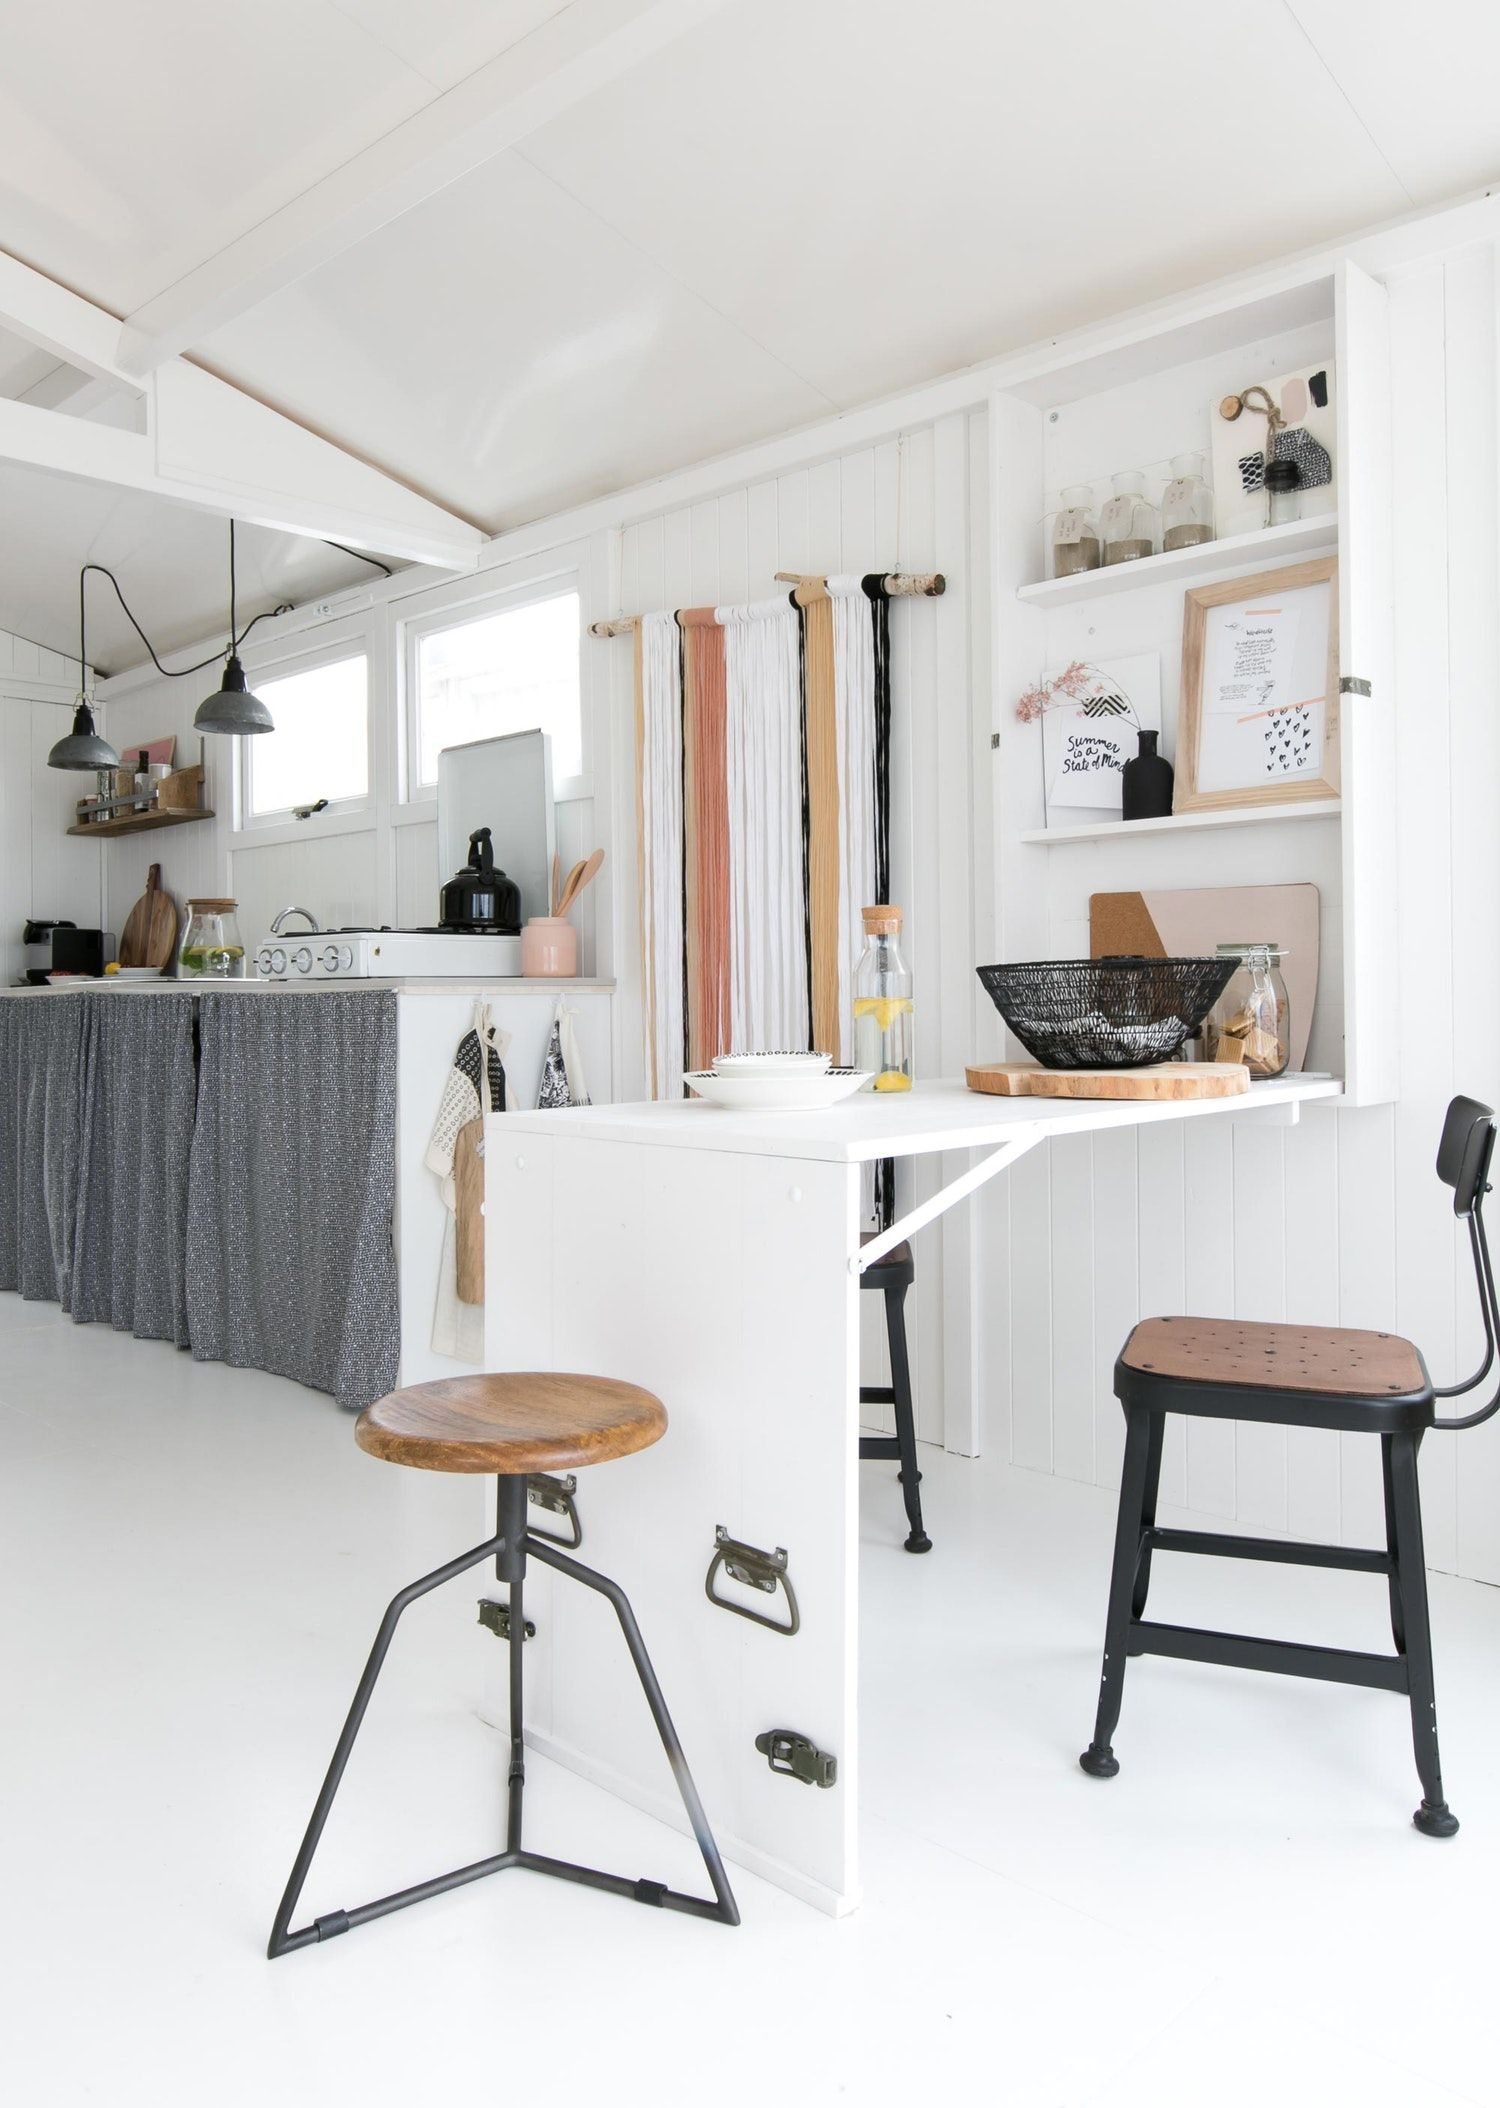 Diy furniture for small spaces thatus flexible u functional